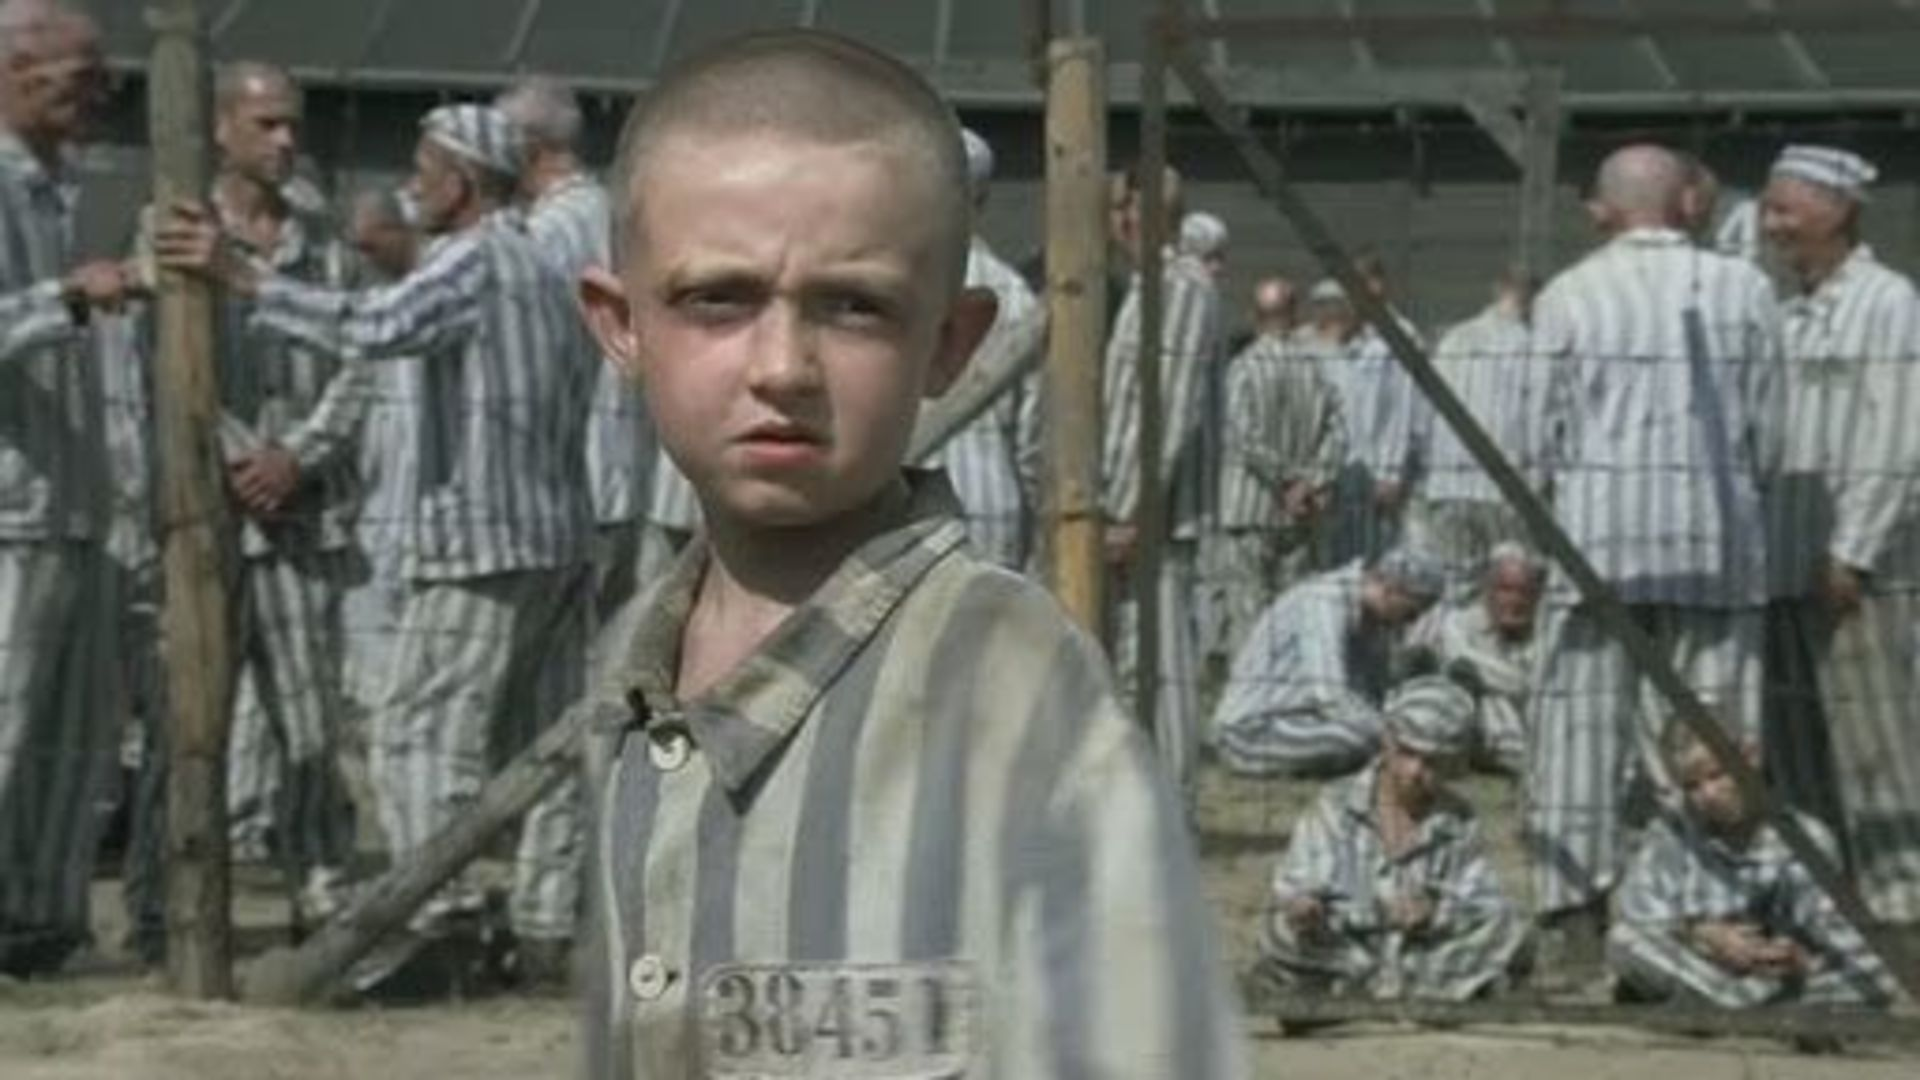 WOII-film 'The Boy in the Striped Pajamas' vanavond op BBC1